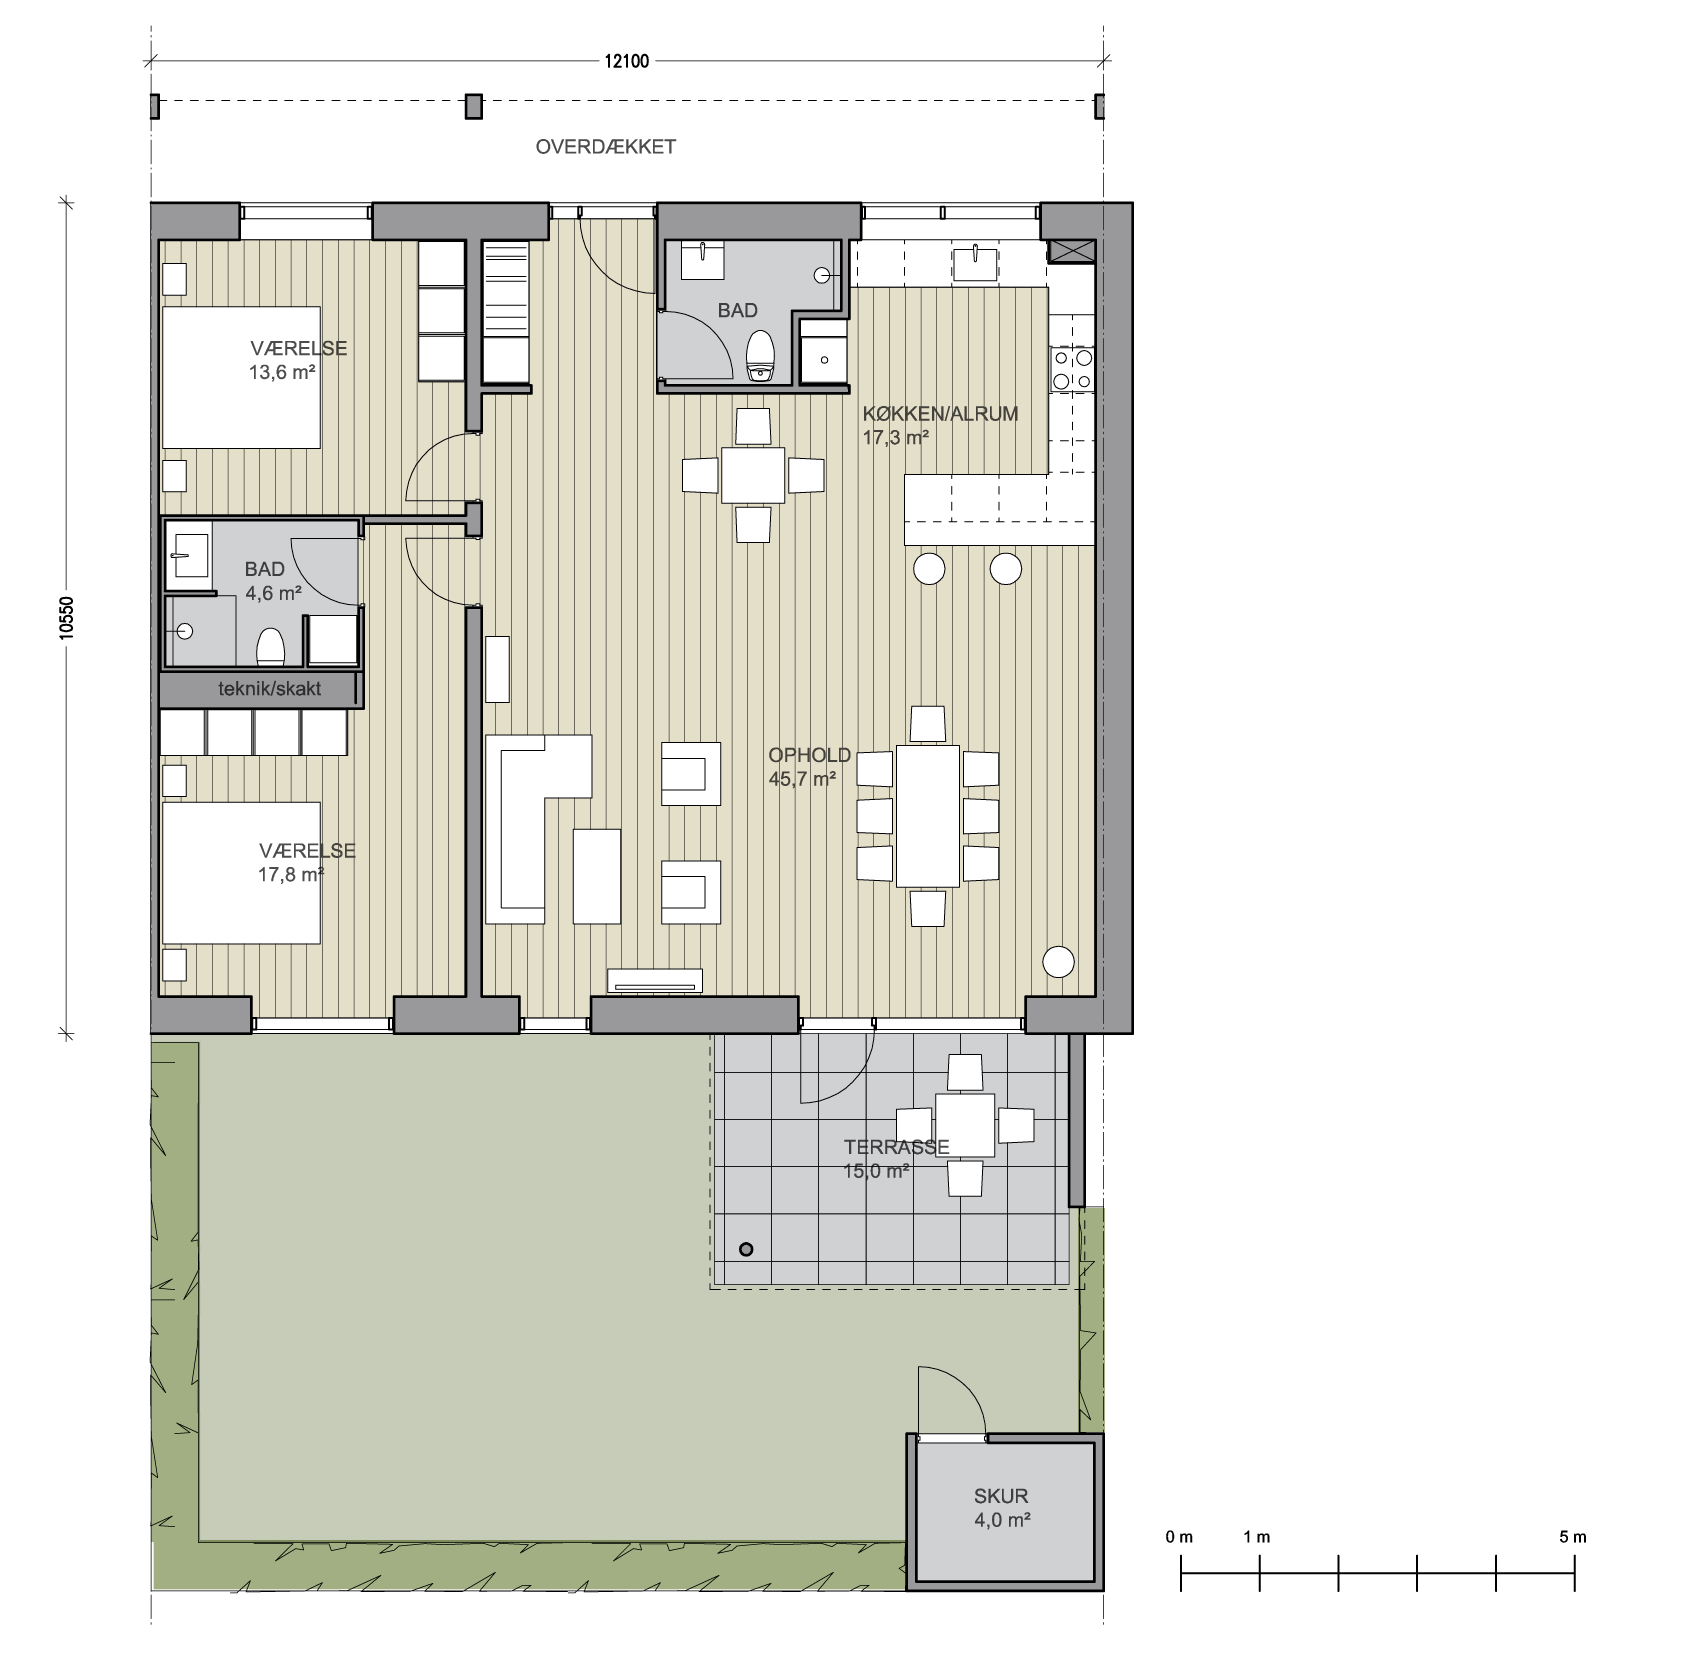 TYPE D - STUEPLAN 3-RUMS BOLIG BOLIG: 131,5 m² TERRASSE: 15